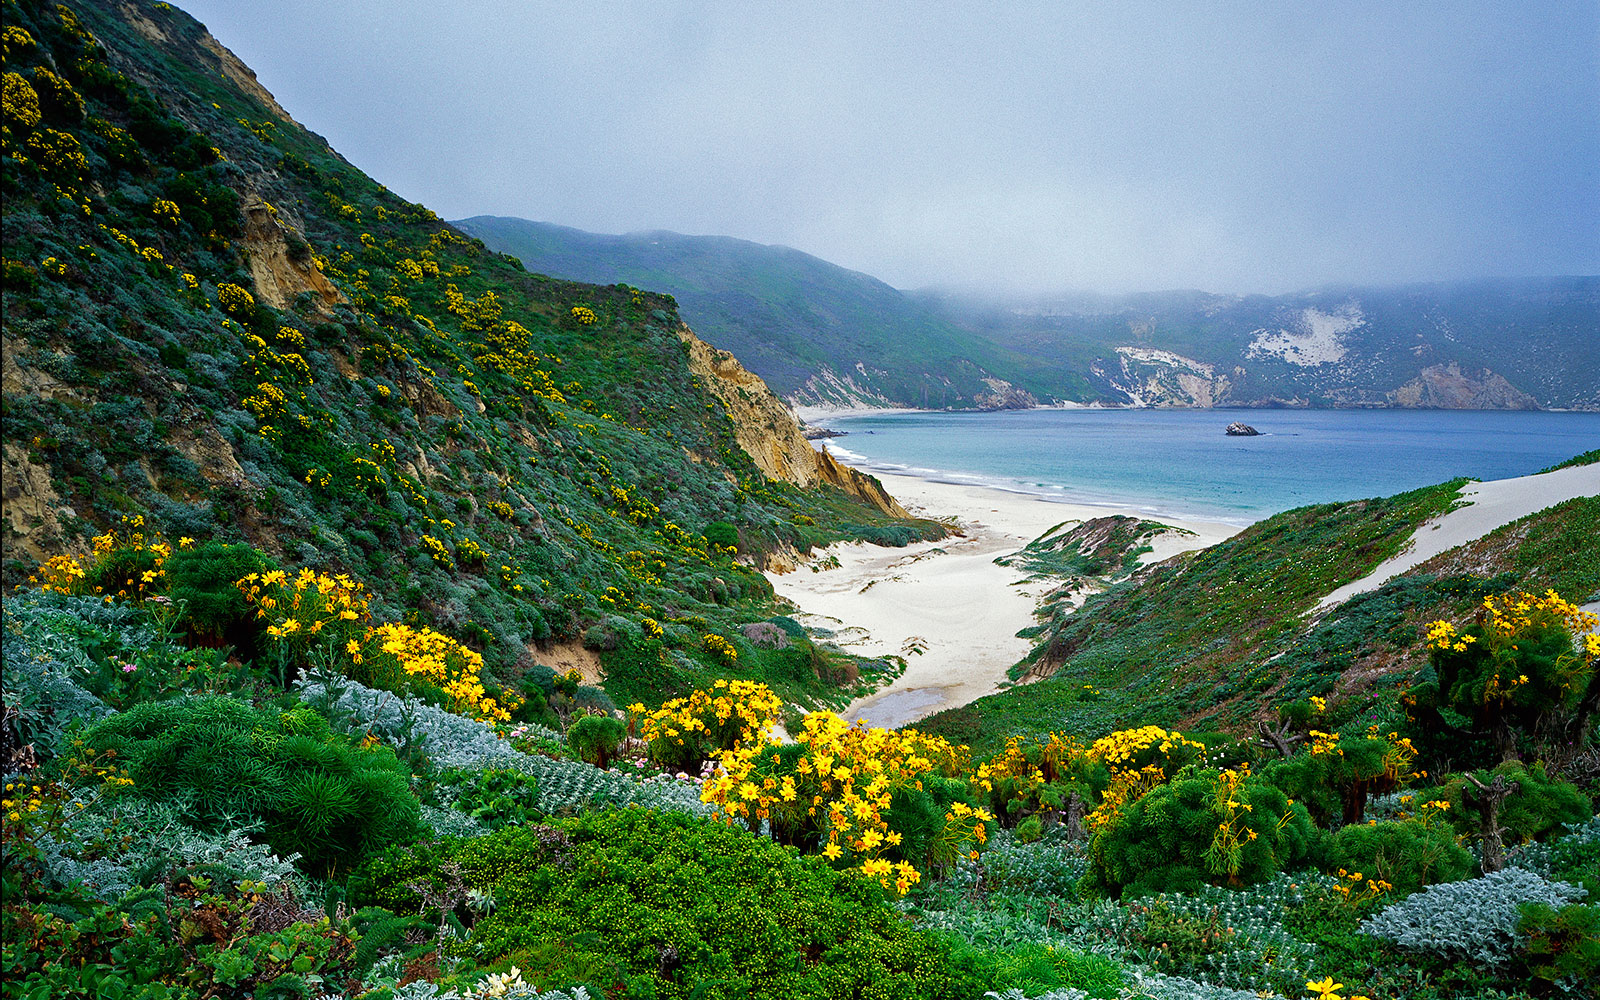 America's Best Secret National Parks: Channel Islands, California